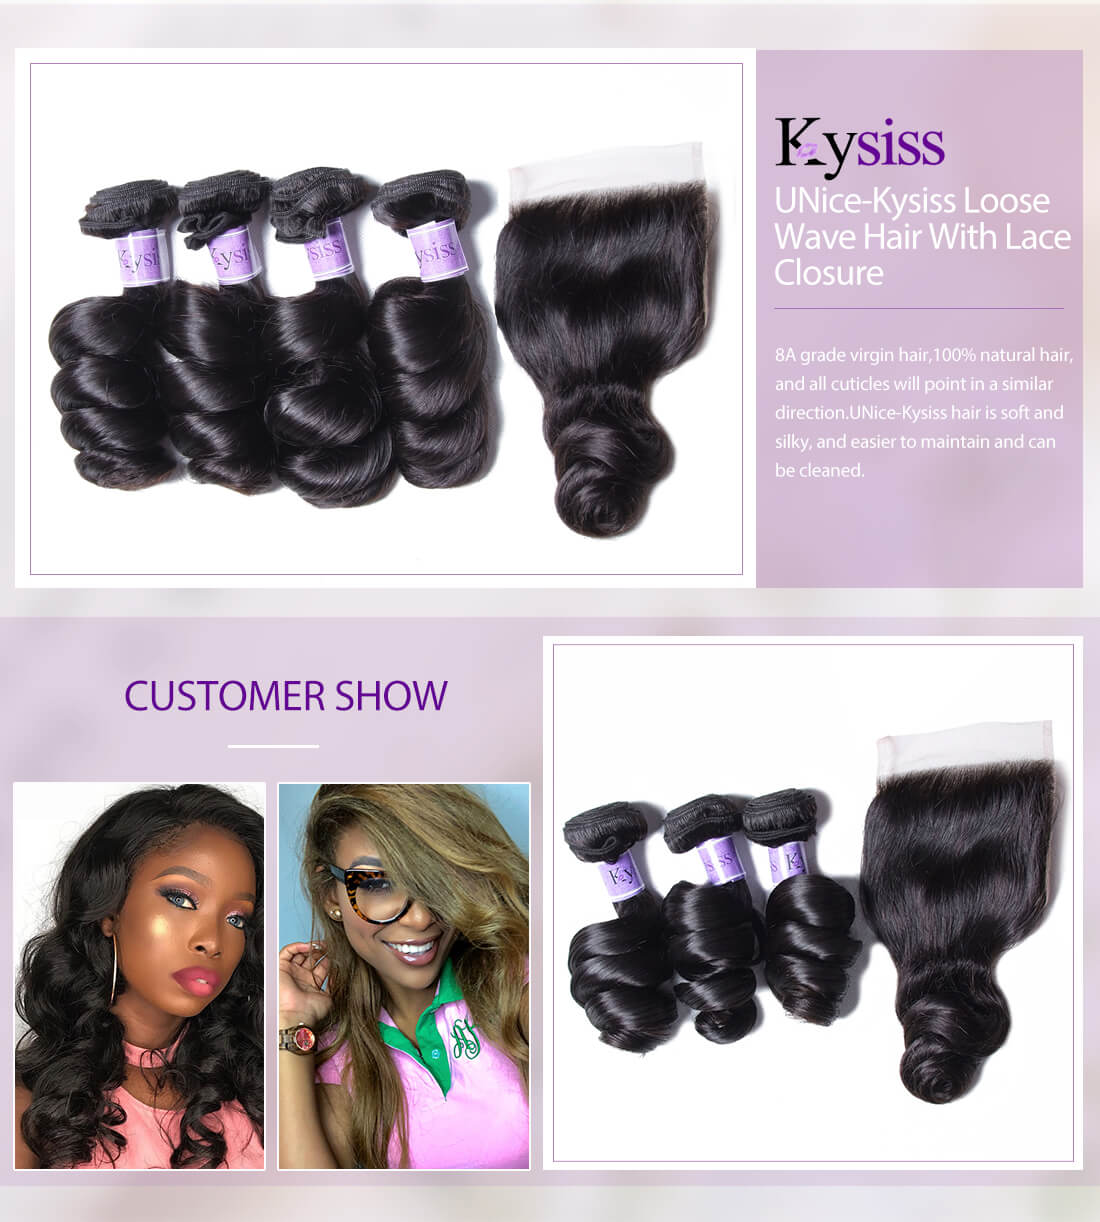 UNice Hair Kysiss Series Loose Wave Hair With Lace Closure